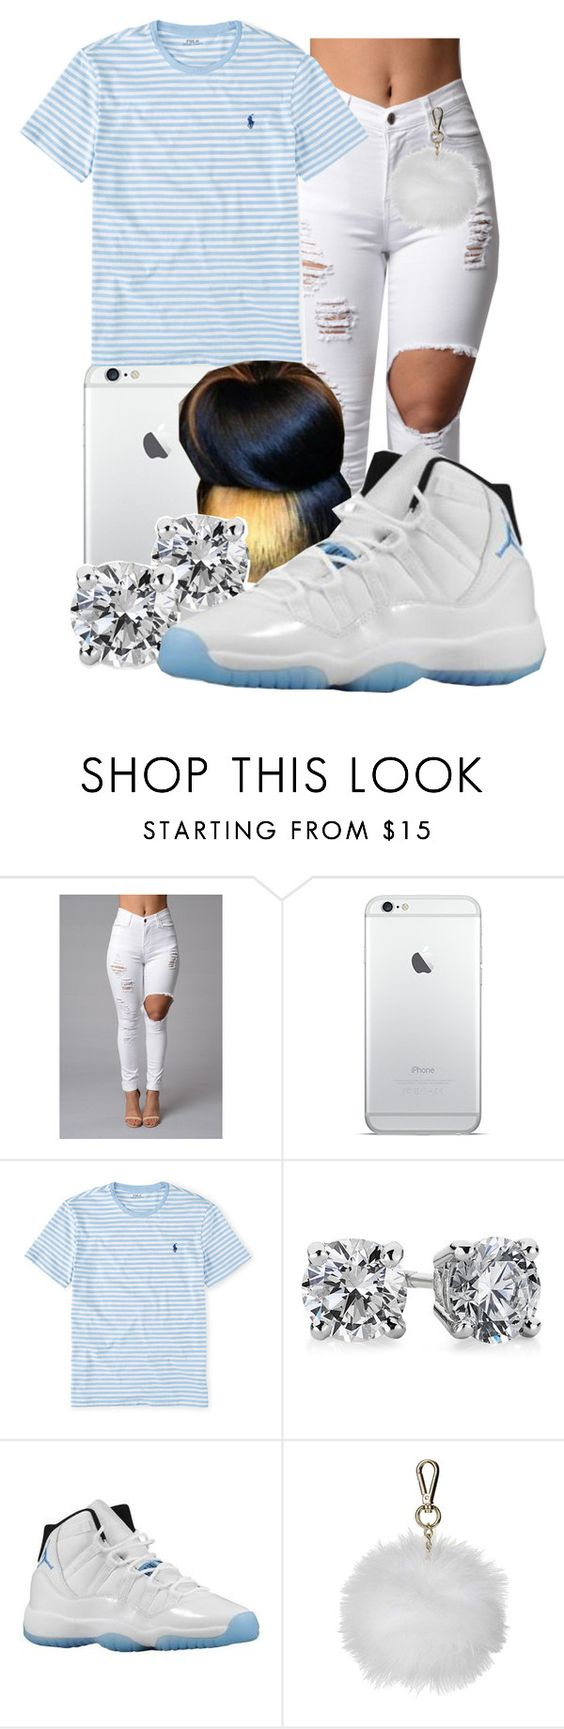 """Loni"" by honey-cocaine1972 ❤ liked on Polyvore featuring Ralph Lauren, Identity, Blue Nile, Retrò and Topshop"